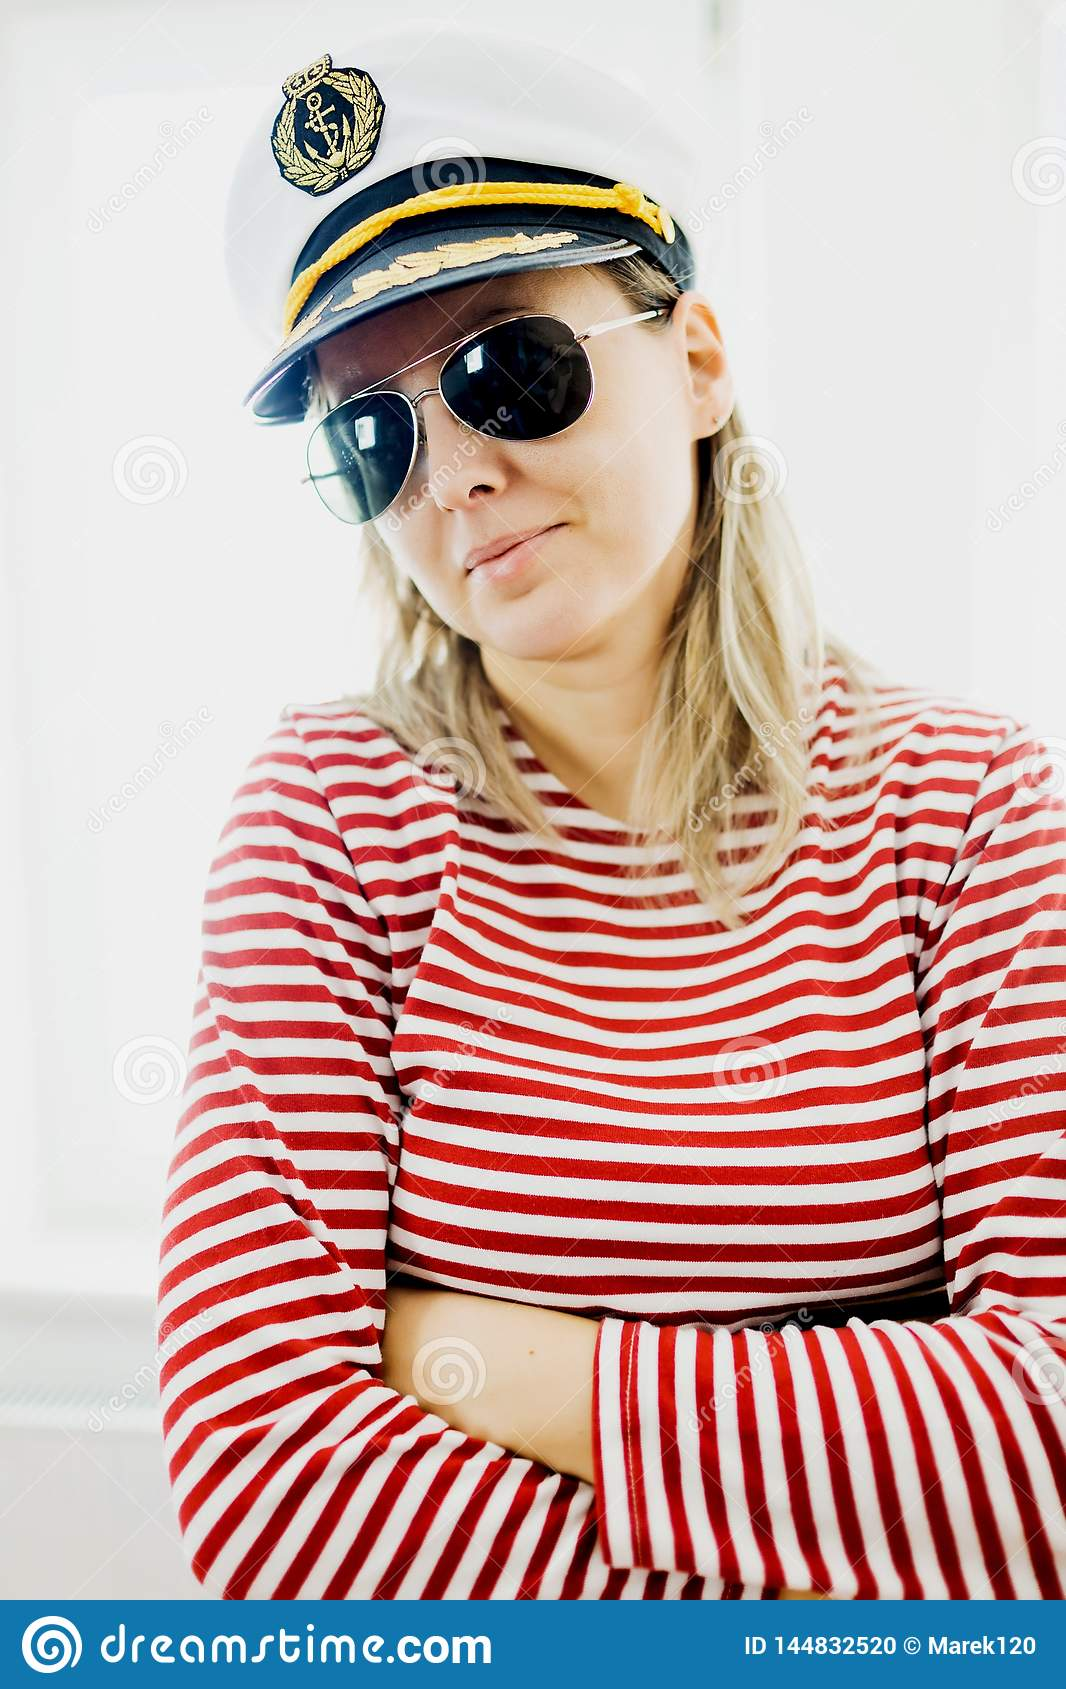 Sceptically young woman sailor in captain cap - wearing red gaps dress